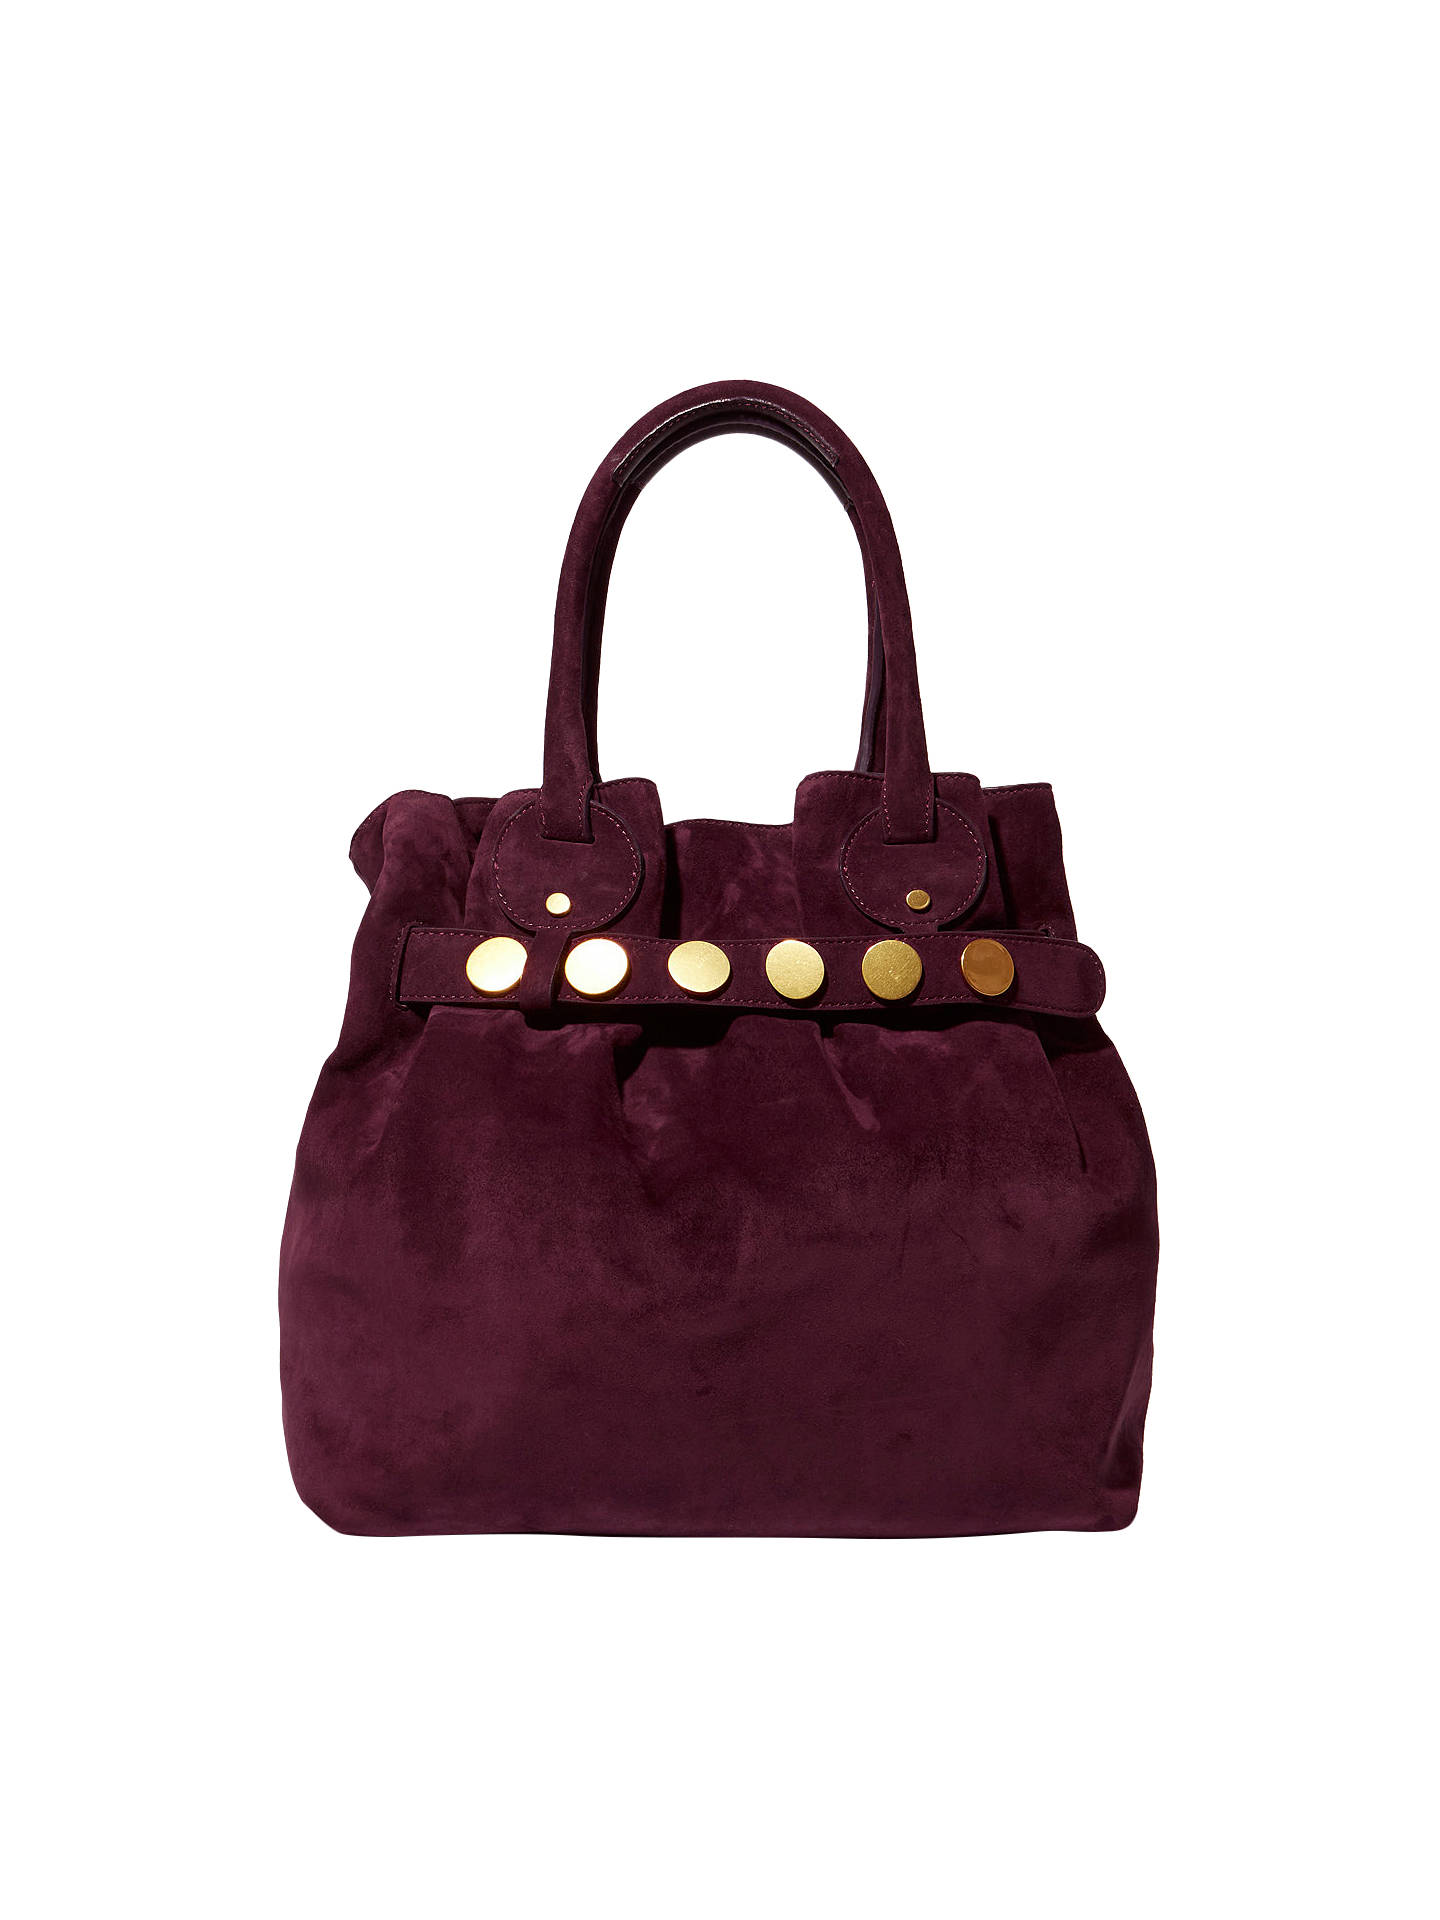 Karen Millen Suede Studded Slouch Bag Aubergine Online At Johnlewis